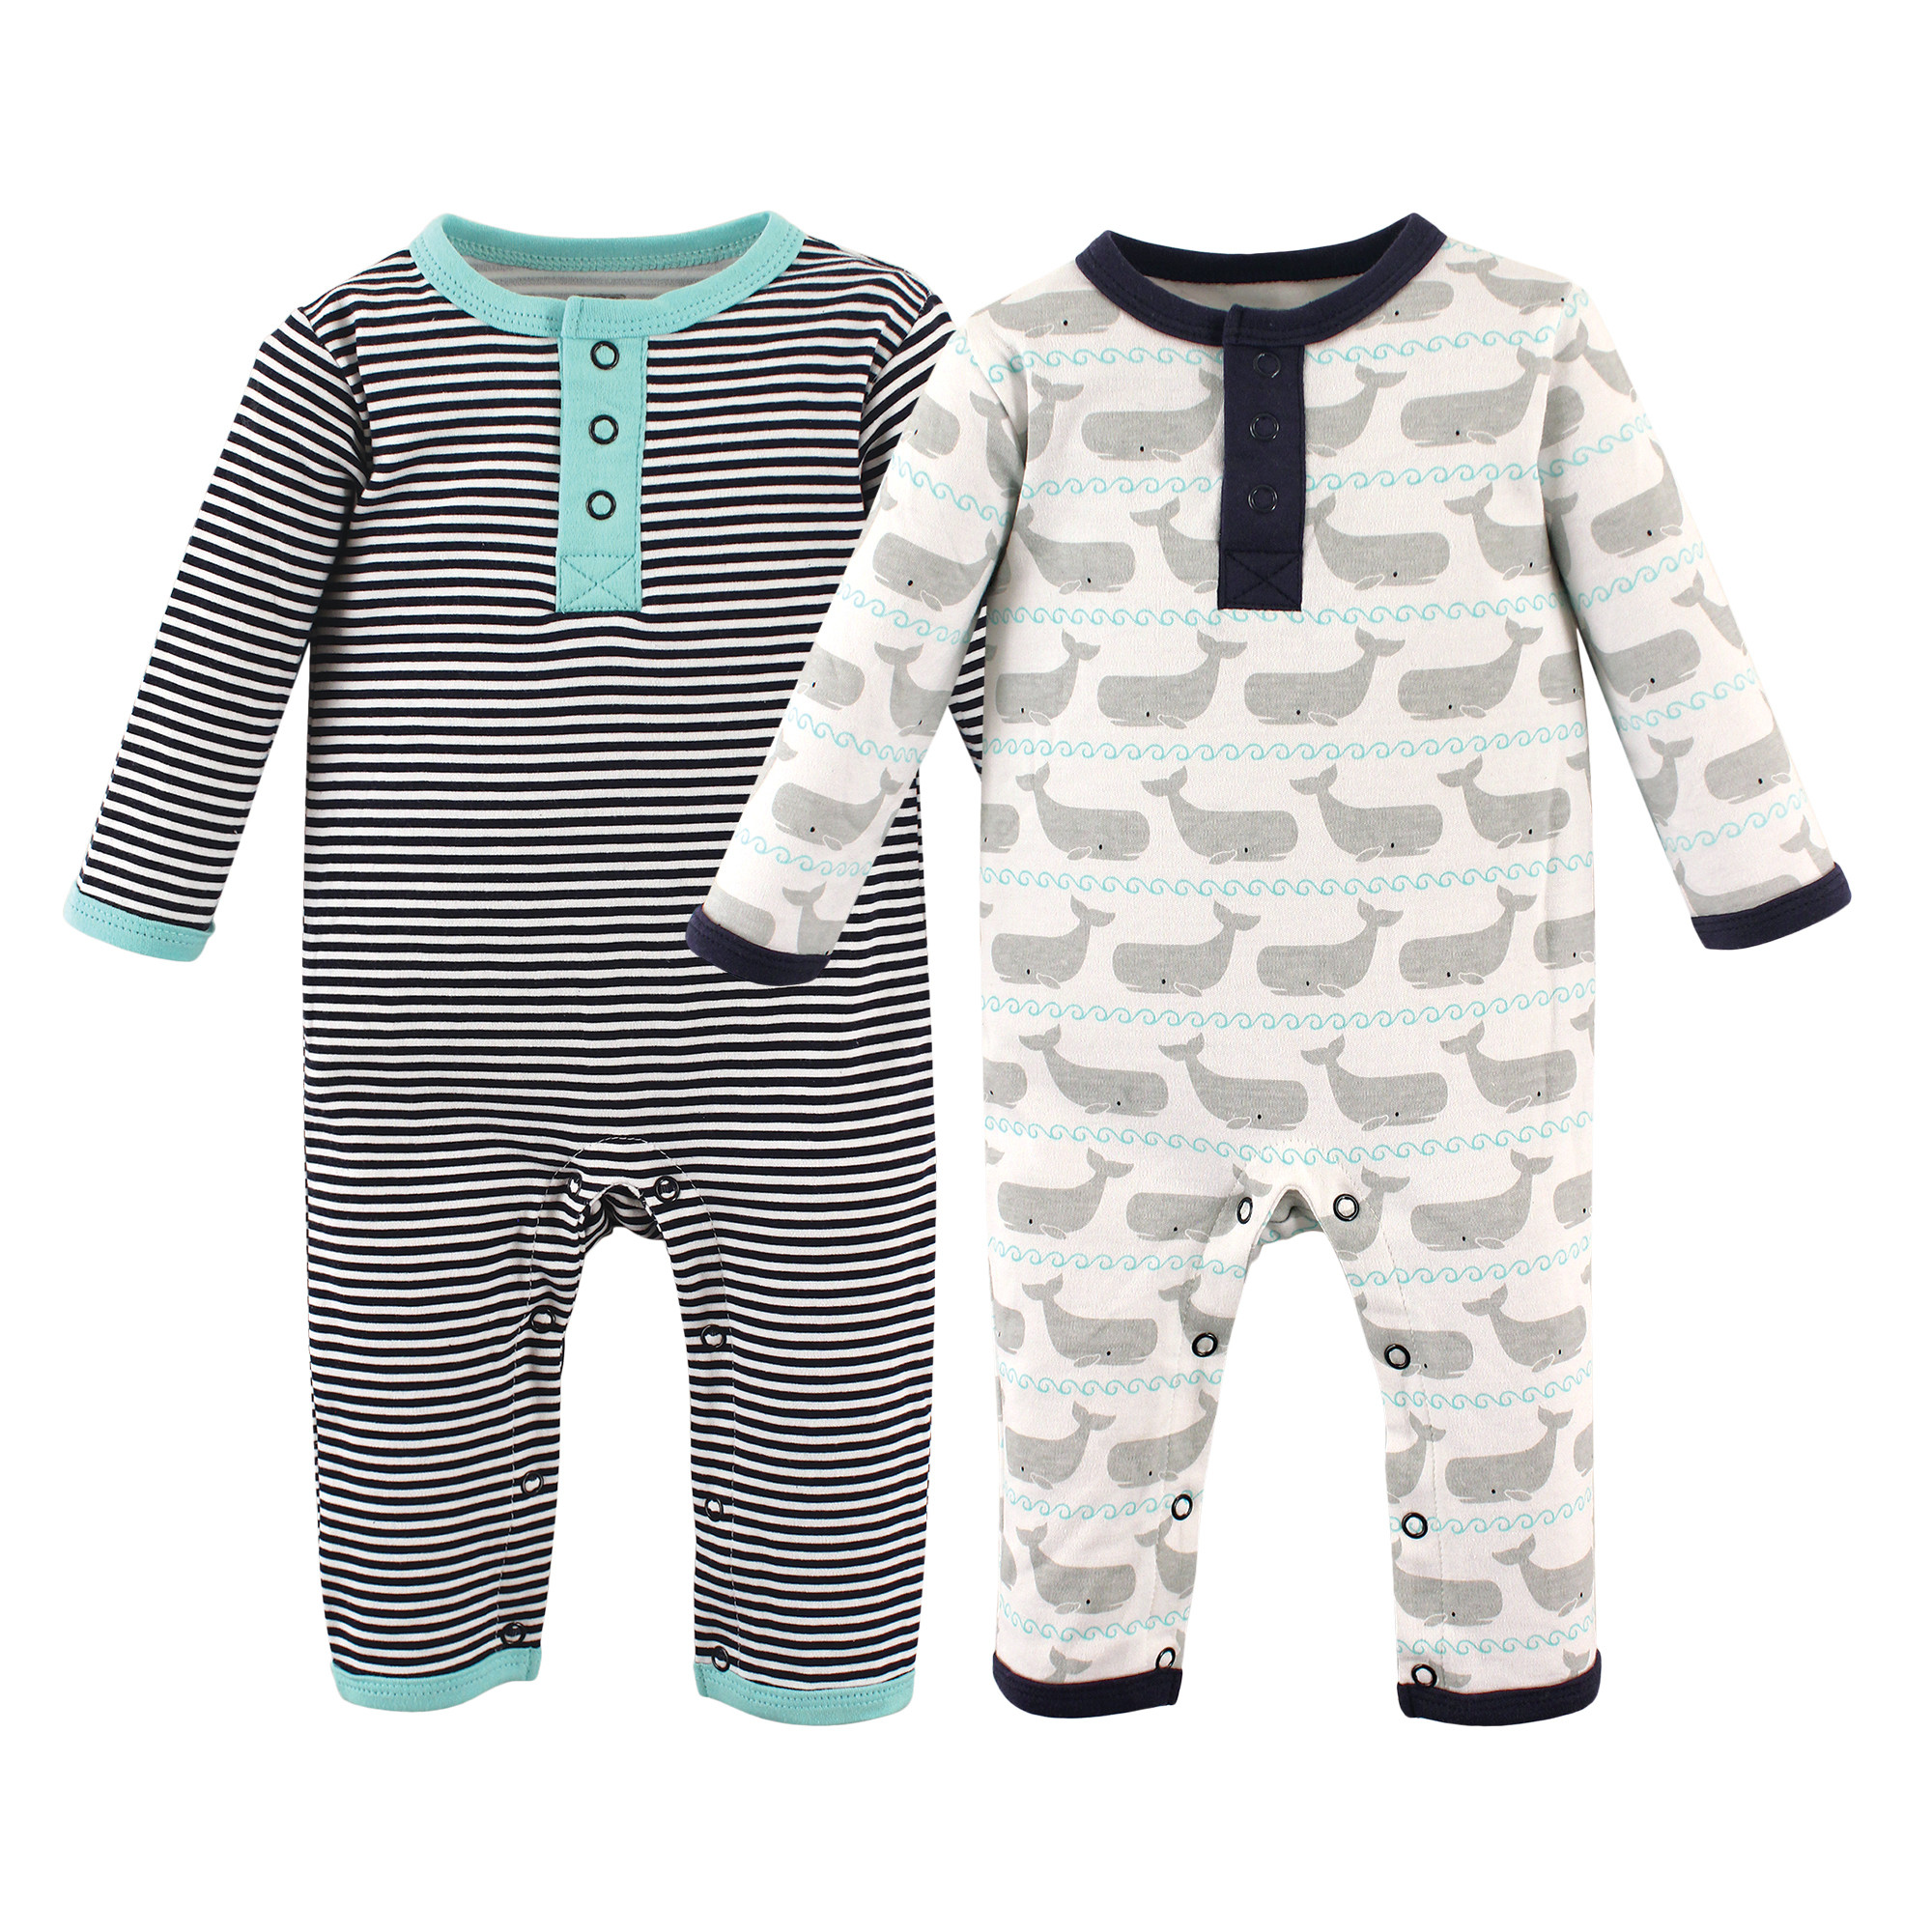 5husihai The Jetsons 1-24 Months Boy Girl Baby Short Sleeve Creeper Jumpsuit Gray